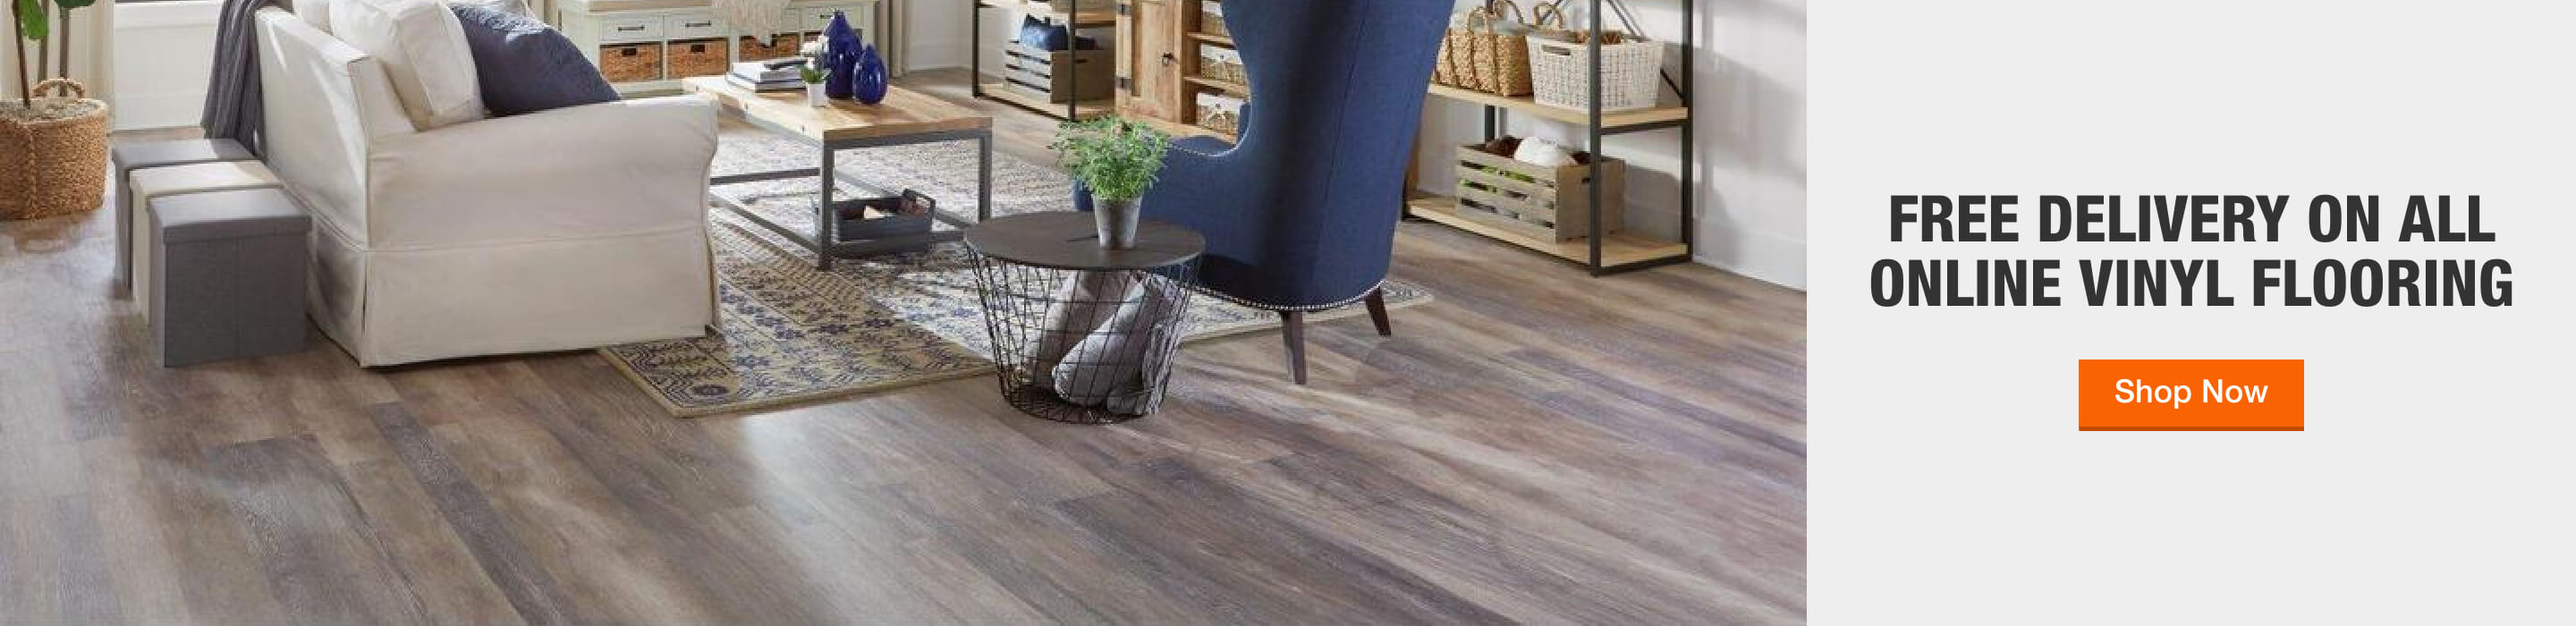 Free Delivery on All Online Vinyl Flooring